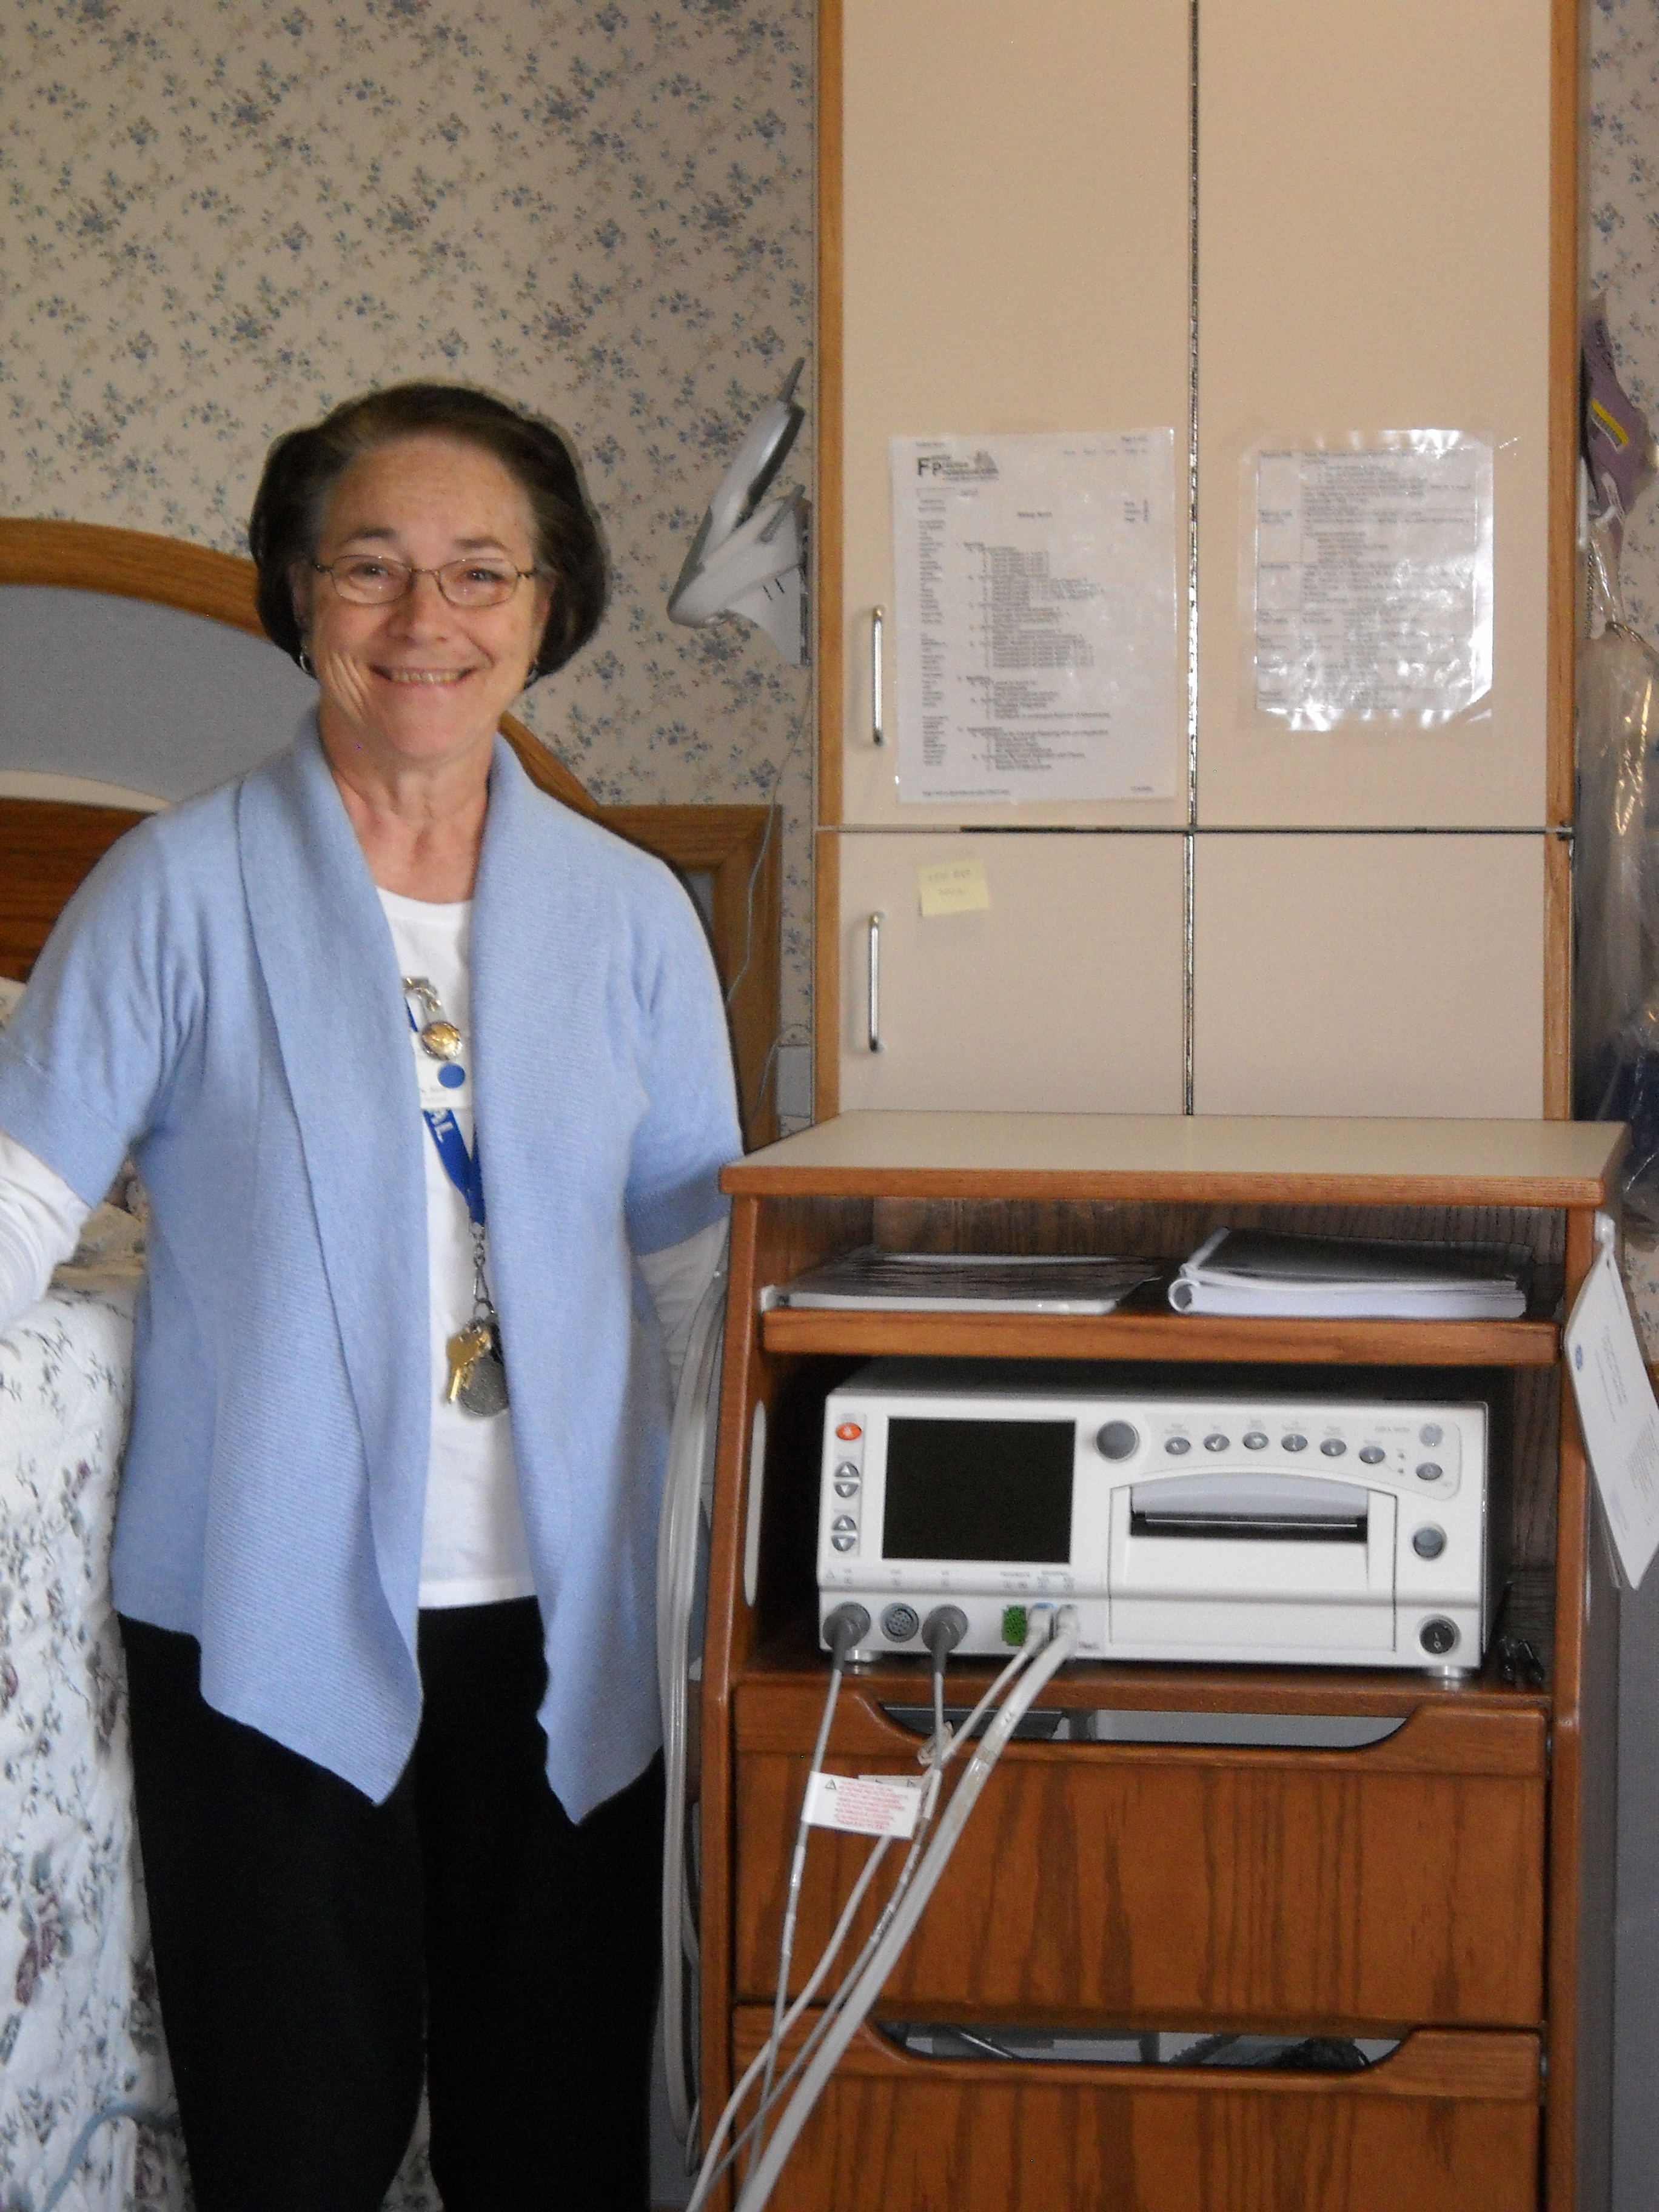 Hospital purchases new, state-of-the-art fetal heart monitor